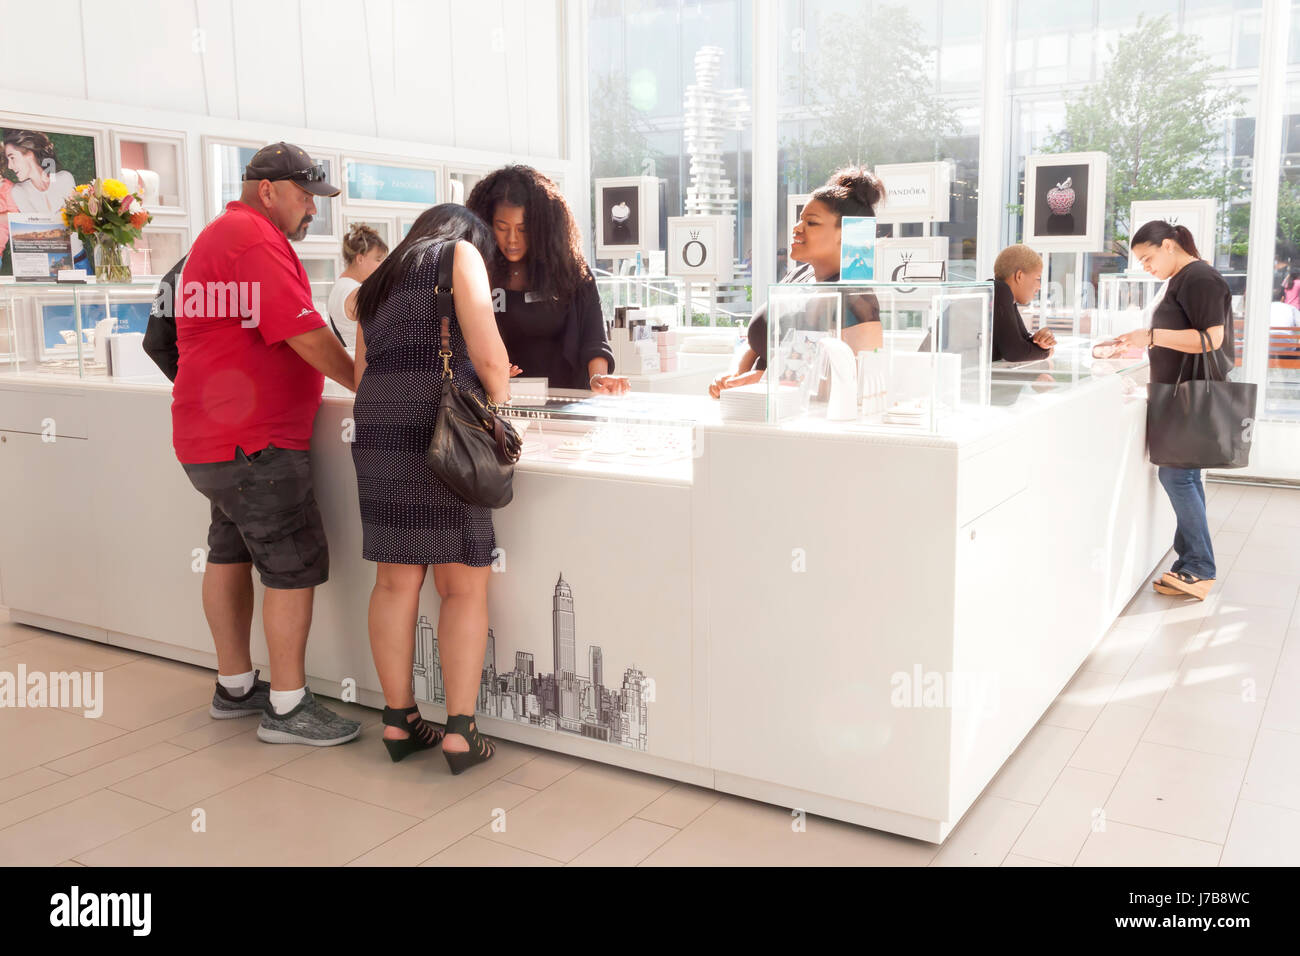 A saleswoman waiting on customers in a Pandora jewelry store in Midtown Manhattan, New York City, New York, USA. - Stock Image